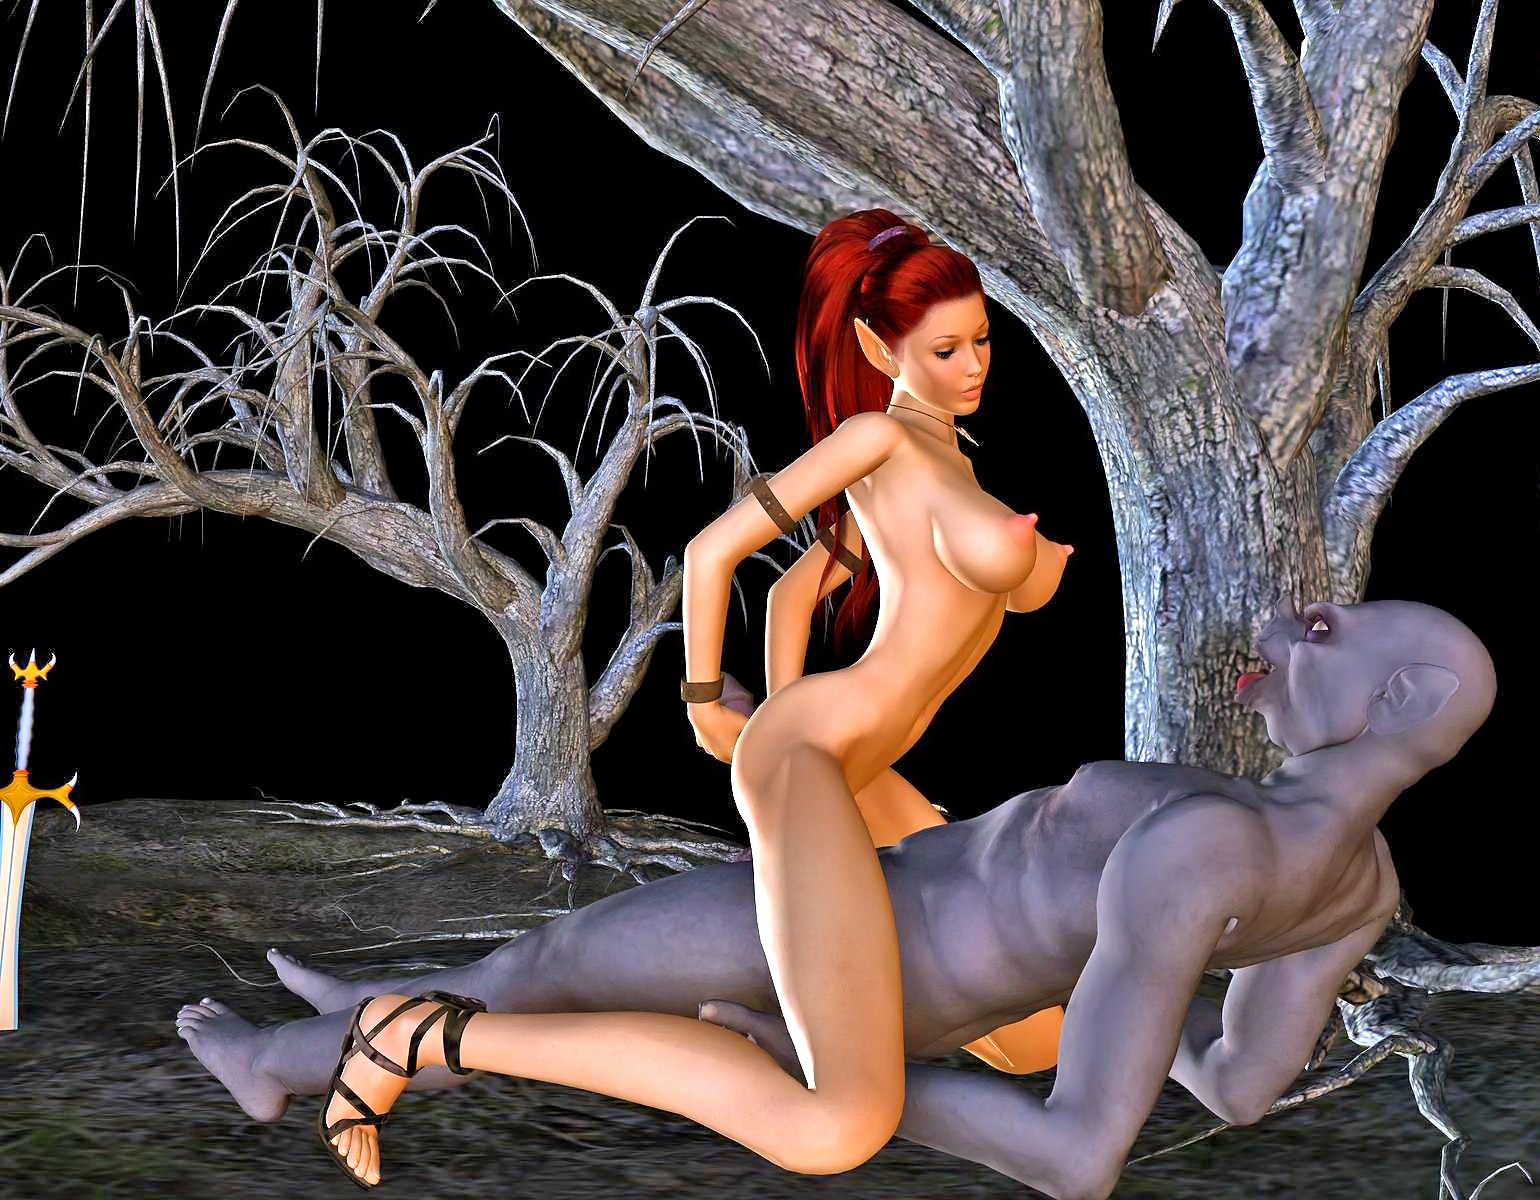 Pic vampire porn galleries pics xxx videos